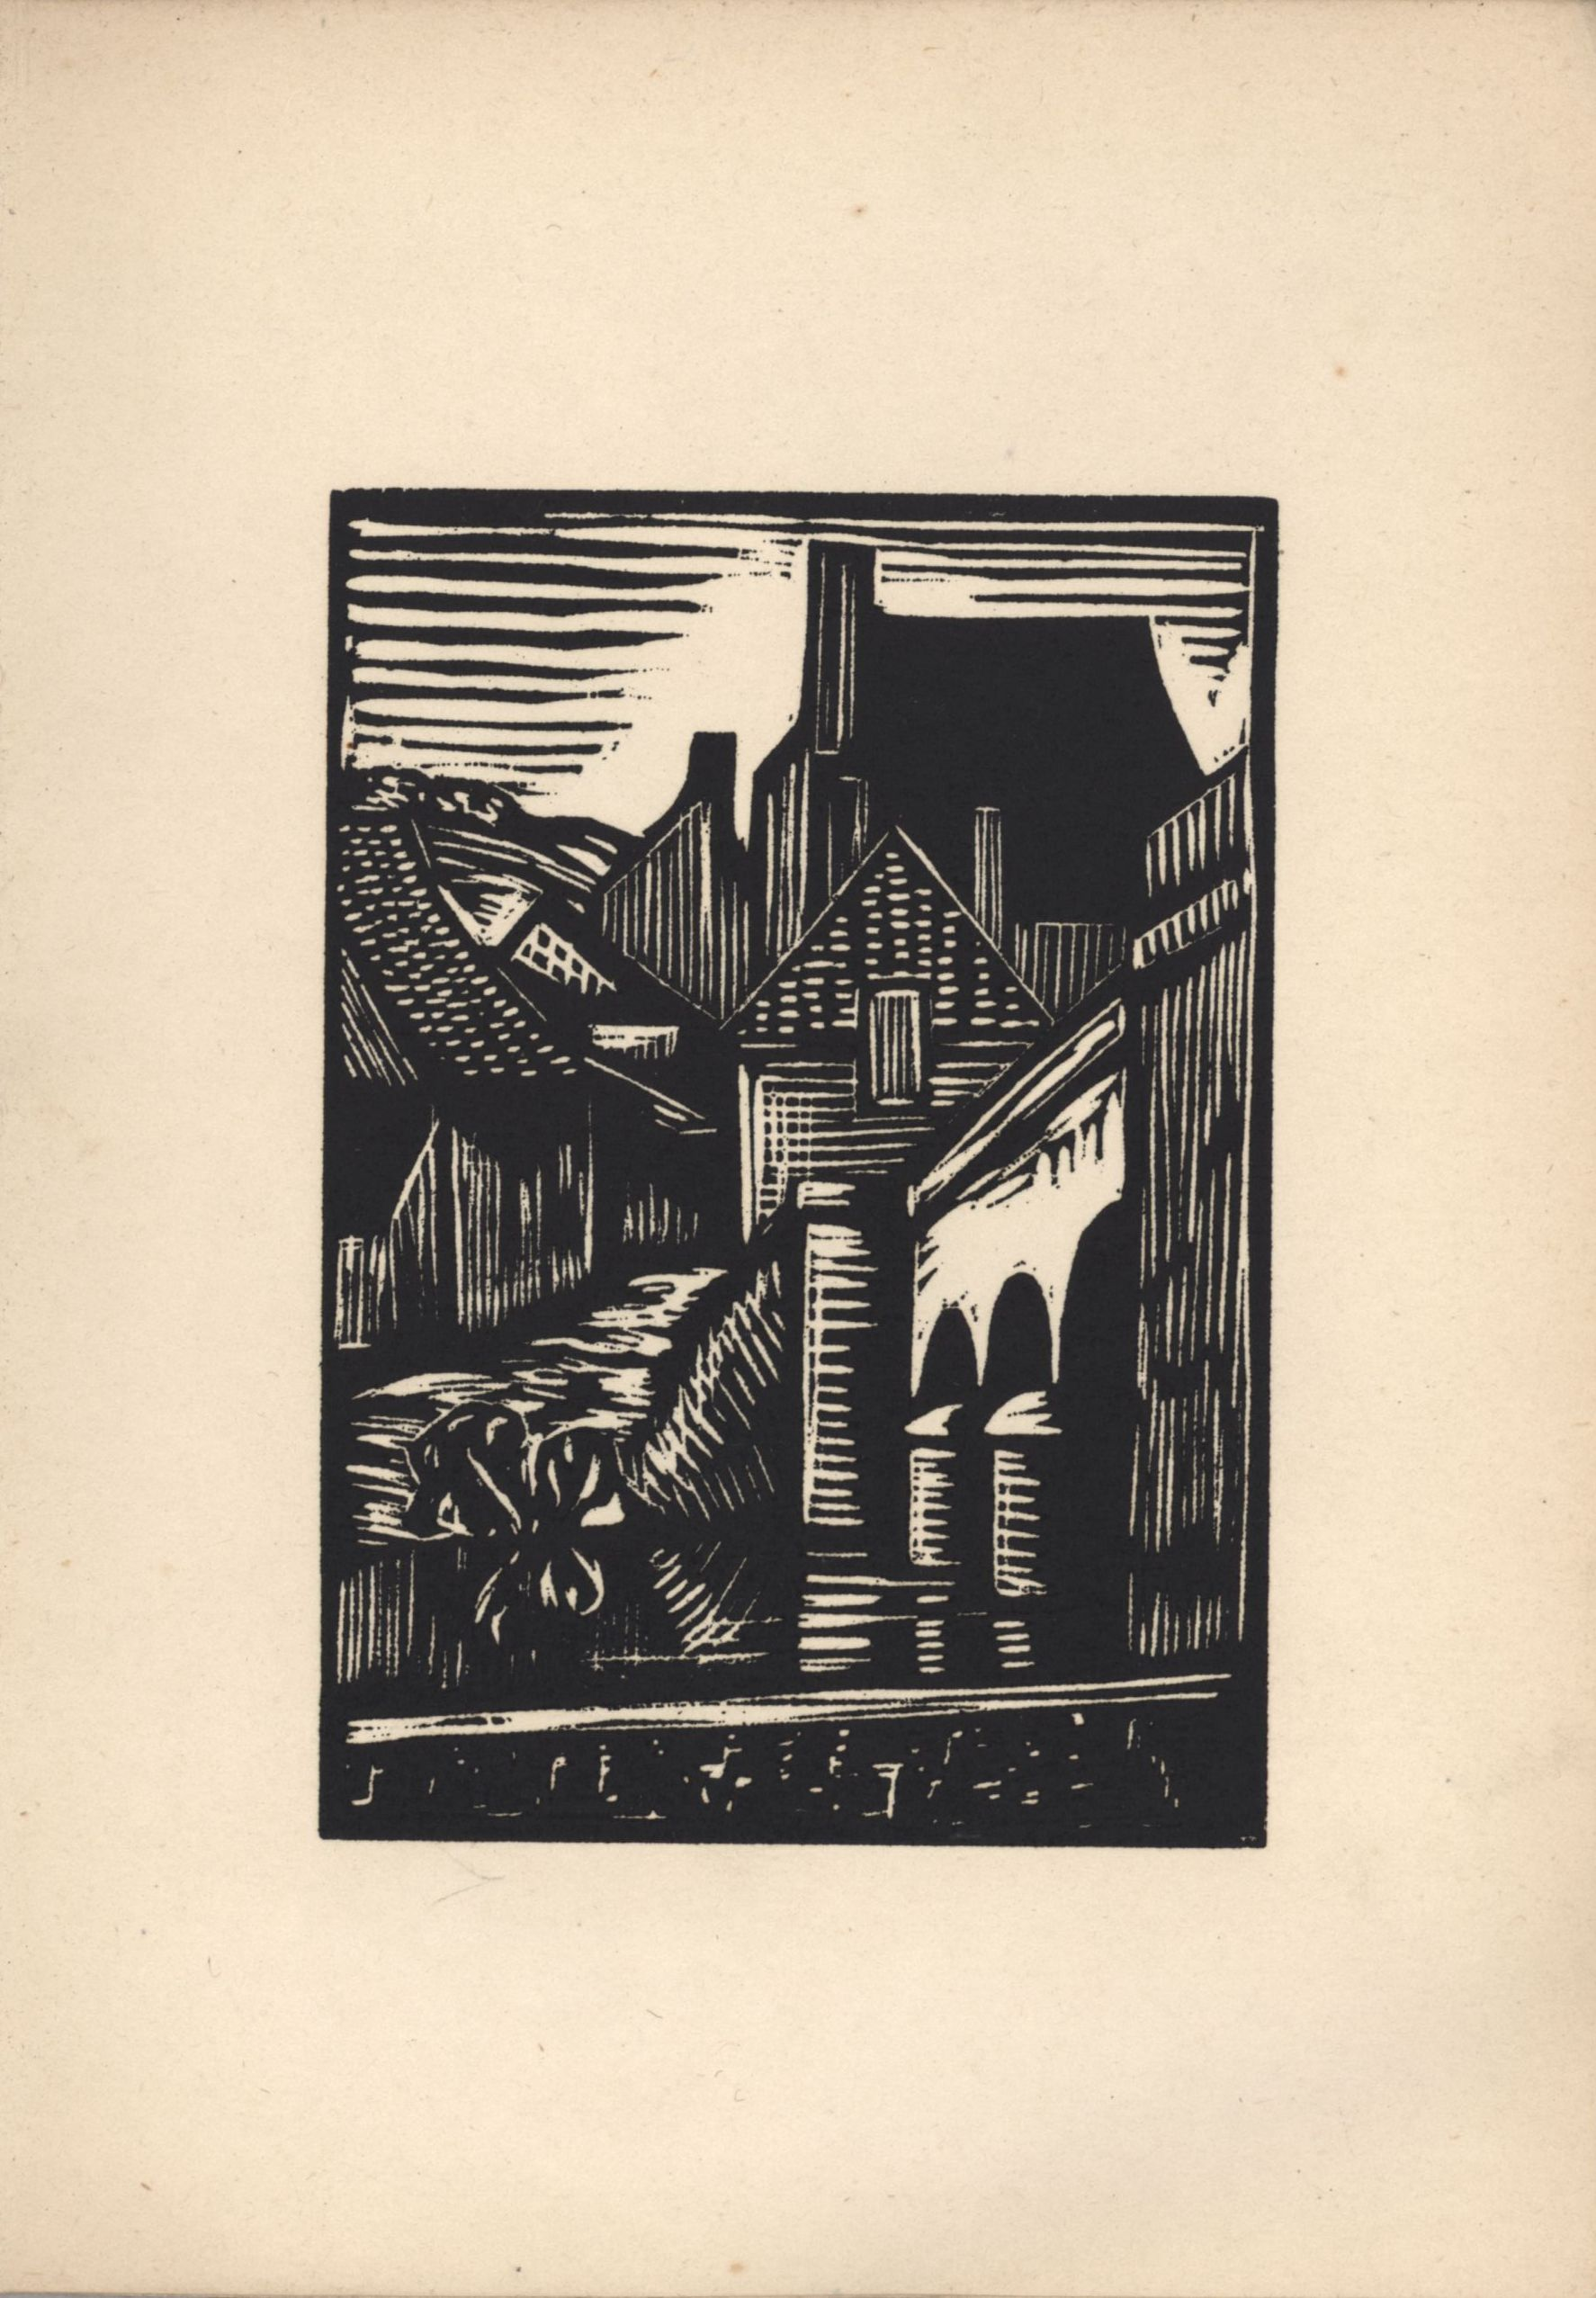 Seventh woodcut from Roger Fry's 'Twelve Original Woodcuts'.